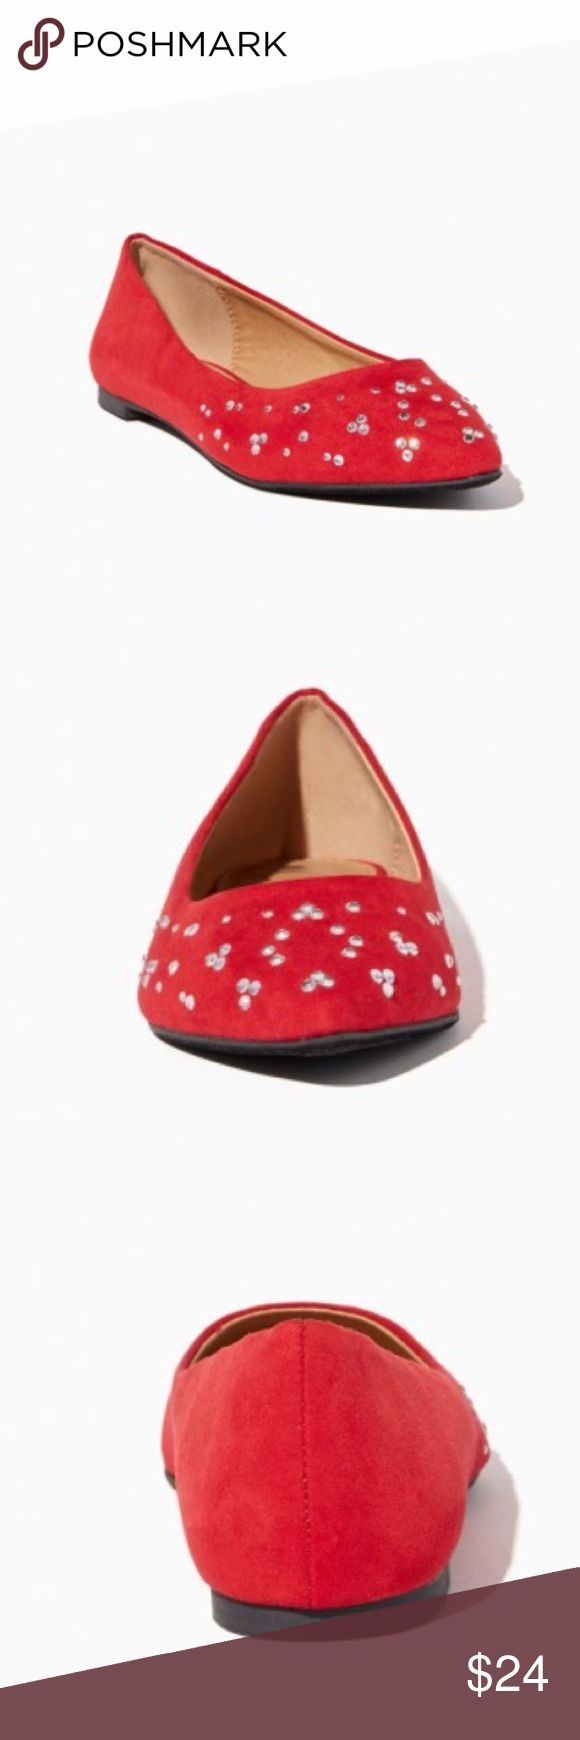 """Candy Apple Red Gem Cluster Fancy Ballet Flats MEASUREMENTS: 1/8"""" heel height MATERIALS: faux suede & rhinestone upper, man-made lining, man-made sole. Only selling because too small on me. Sorry for stock photo. I am awaiting surgery. And am not home to take a pic. 31517 Charming Charlie Shoes Flats & Loafers"""